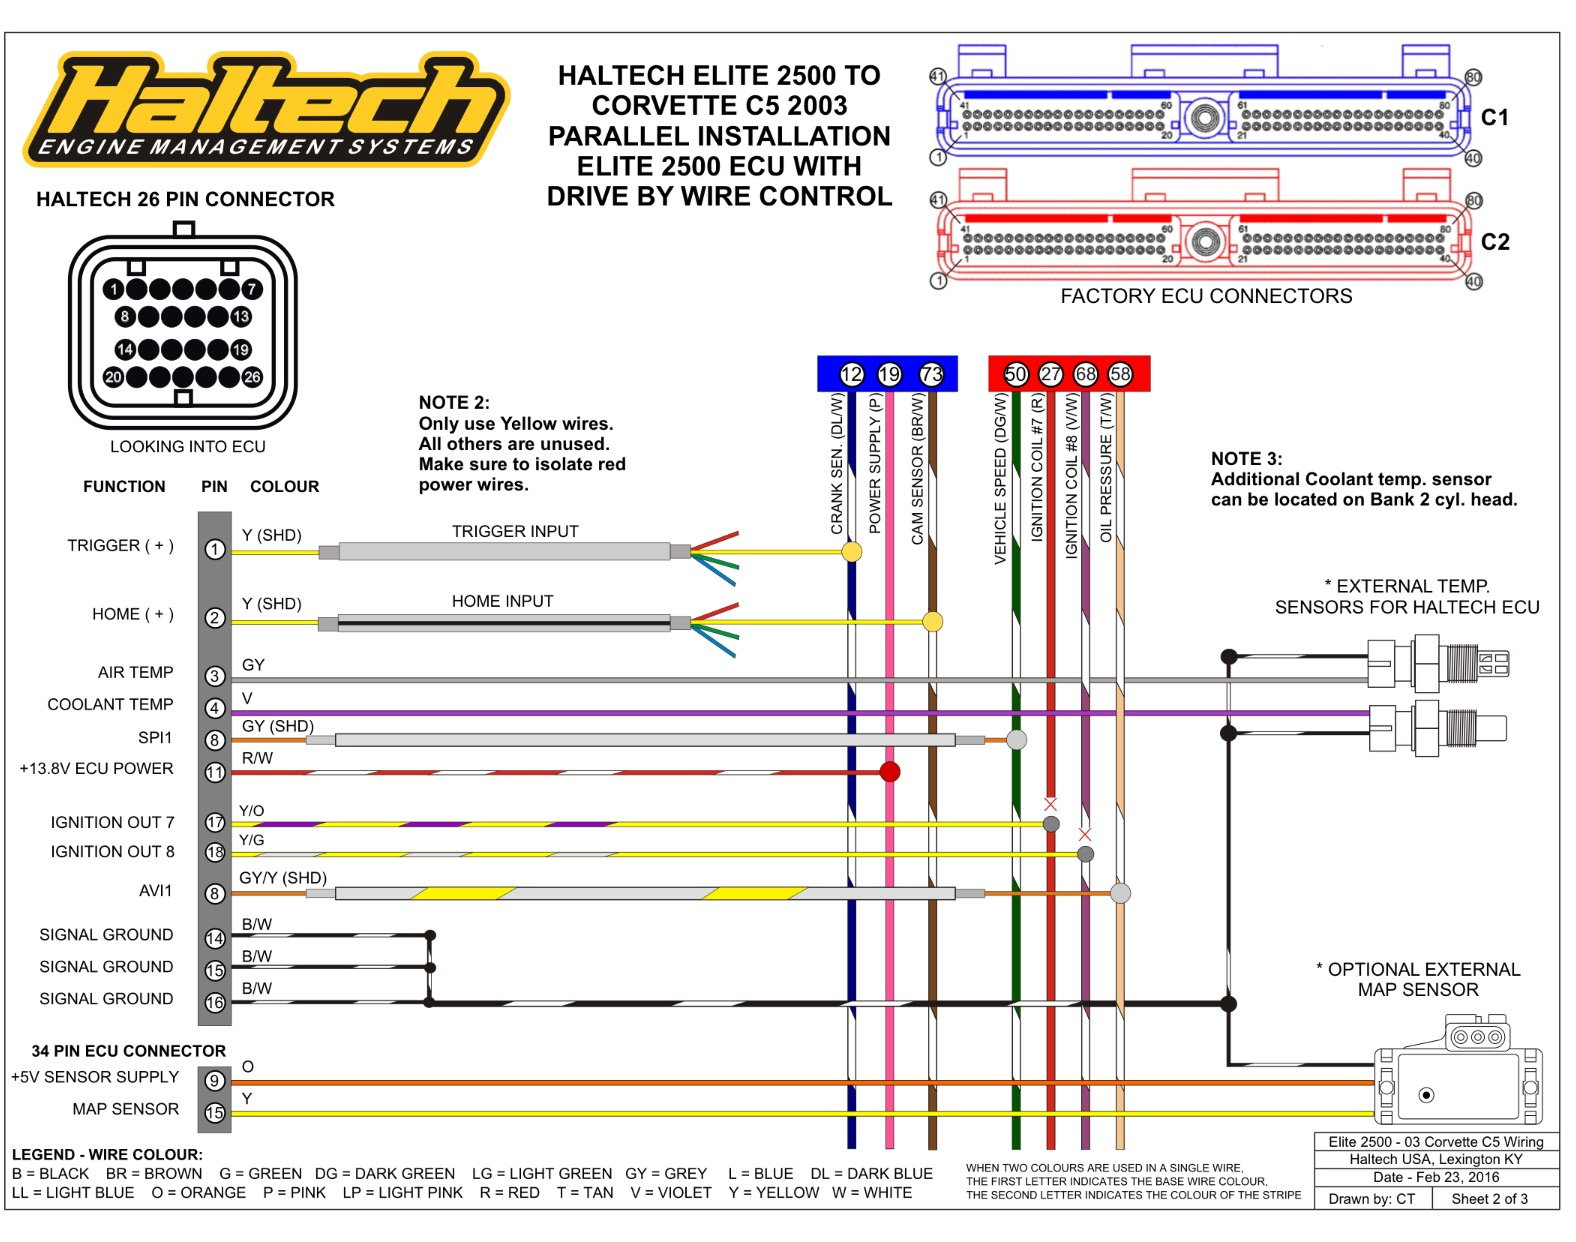 WRG-4274] Jeep Map Sensor Wiring Diagram on auto meter wiring diagram, microtech wiring diagram, msd wiring diagram, fuelab wiring diagram, denso wiring diagram, flex-a-lite wiring diagram, ctek wiring diagram, snow performance wiring diagram, honda wiring diagram, dei wiring diagram, gopro wiring diagram,